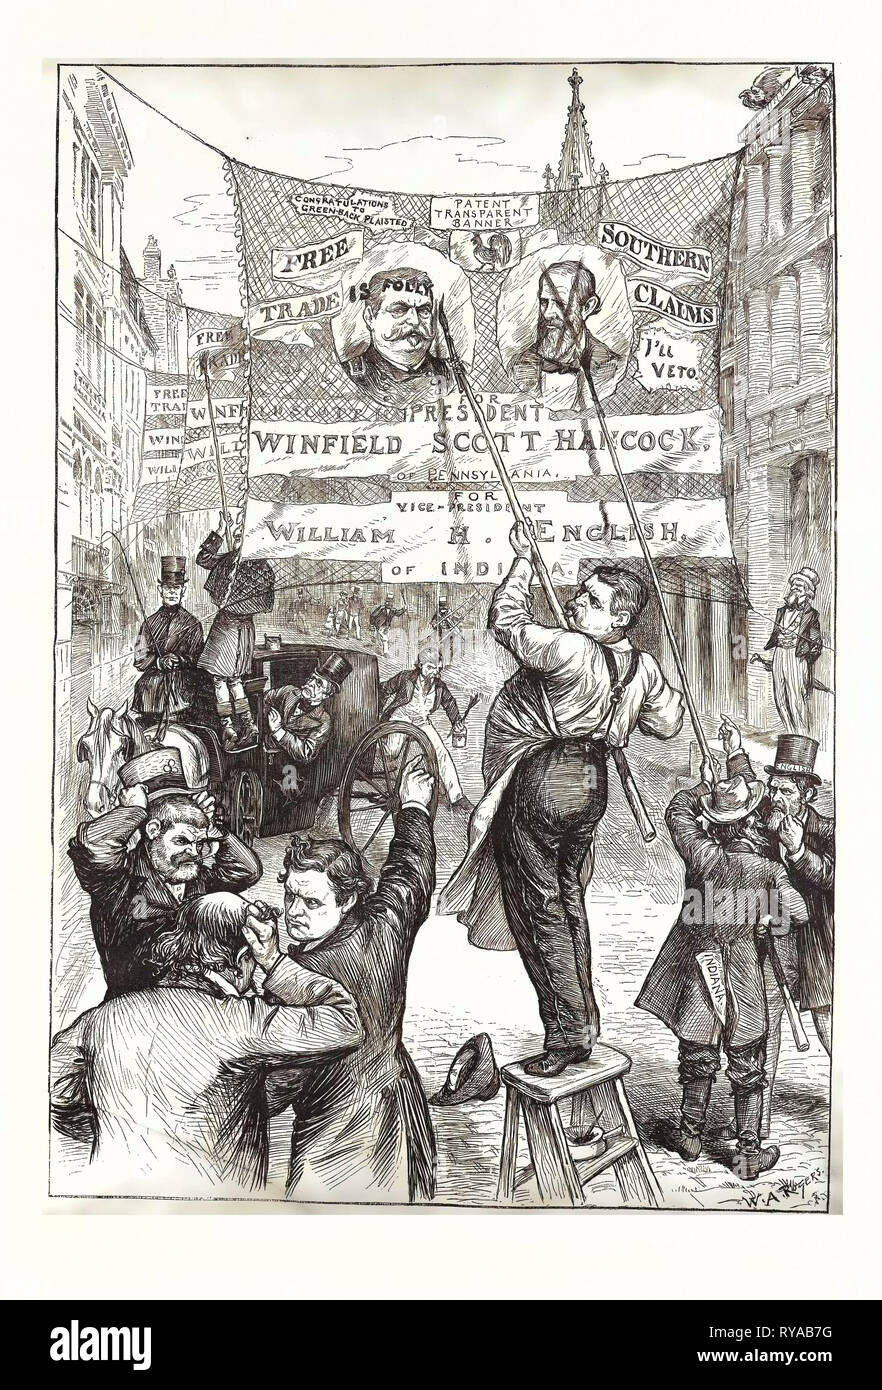 Campaign of 'Changes.' , Engraving 1880, US, USA, America, Politics, Political, Politic, Campaign, Patriotic - Stock Image